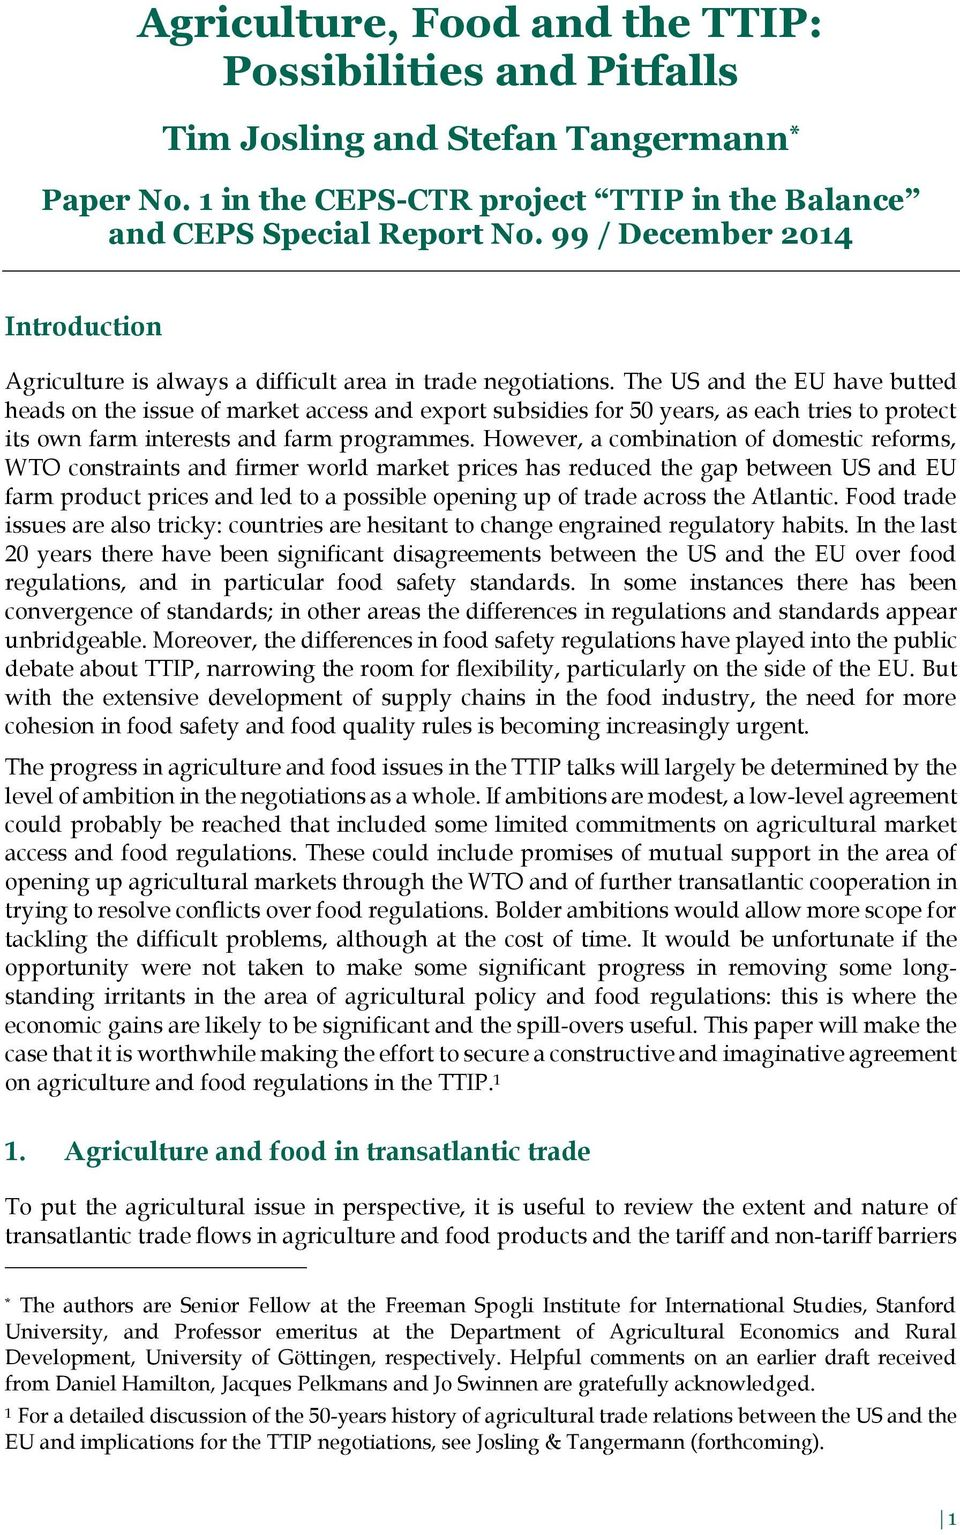 The US and the EU have butted heads on the issue of market access and export subsidies for 50 years, as each tries to protect its own farm interests and farm programmes.